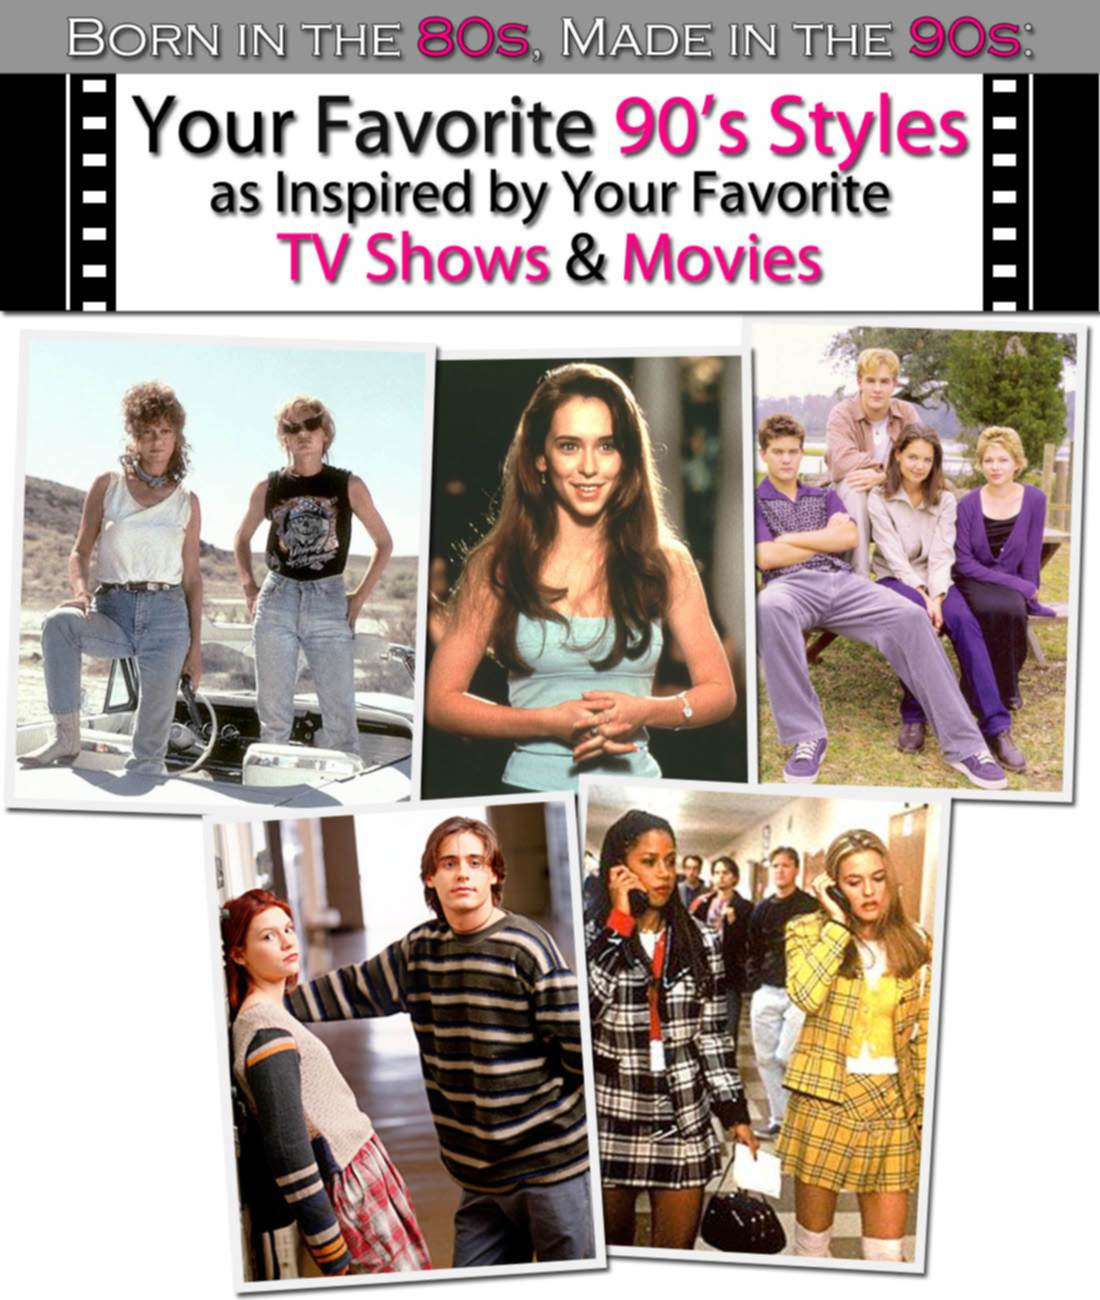 Born in the 80s, Made in the 90s: Your Favorite 90's Styles as Inspired by Your Favorite TV Shows & Movies post image